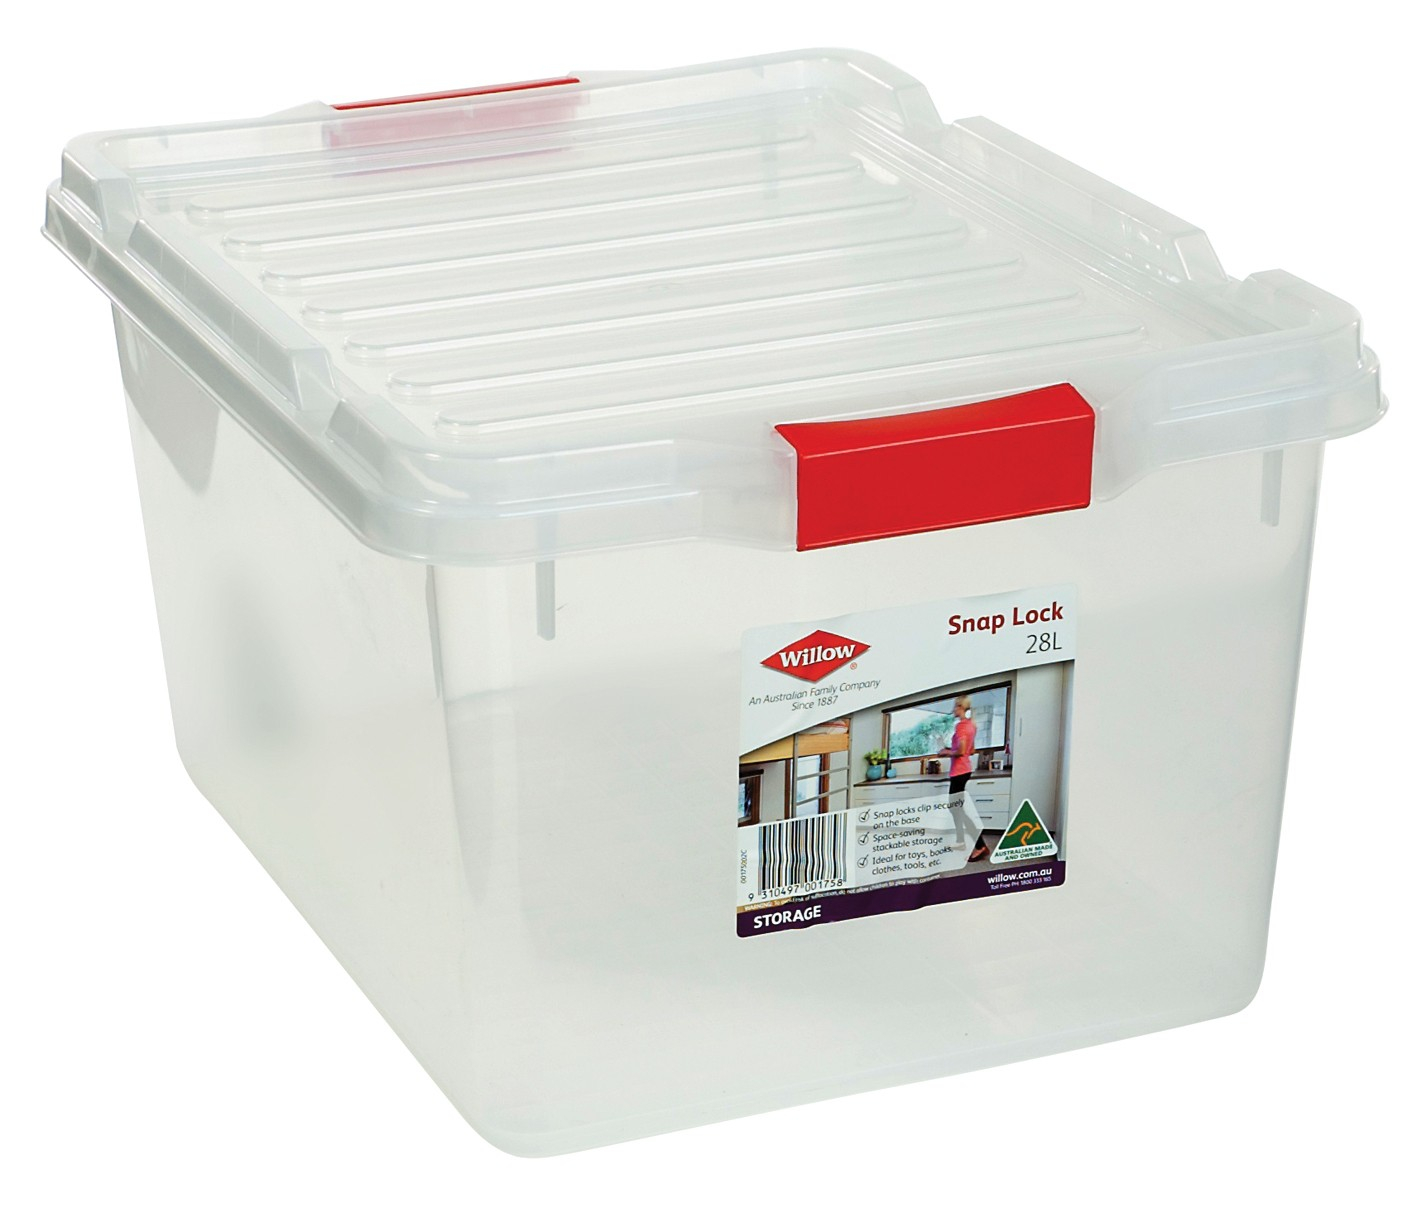 Willow Storage Box 28l Snap Lock Lid From Storage Box with regard to dimensions 1417 X 1213